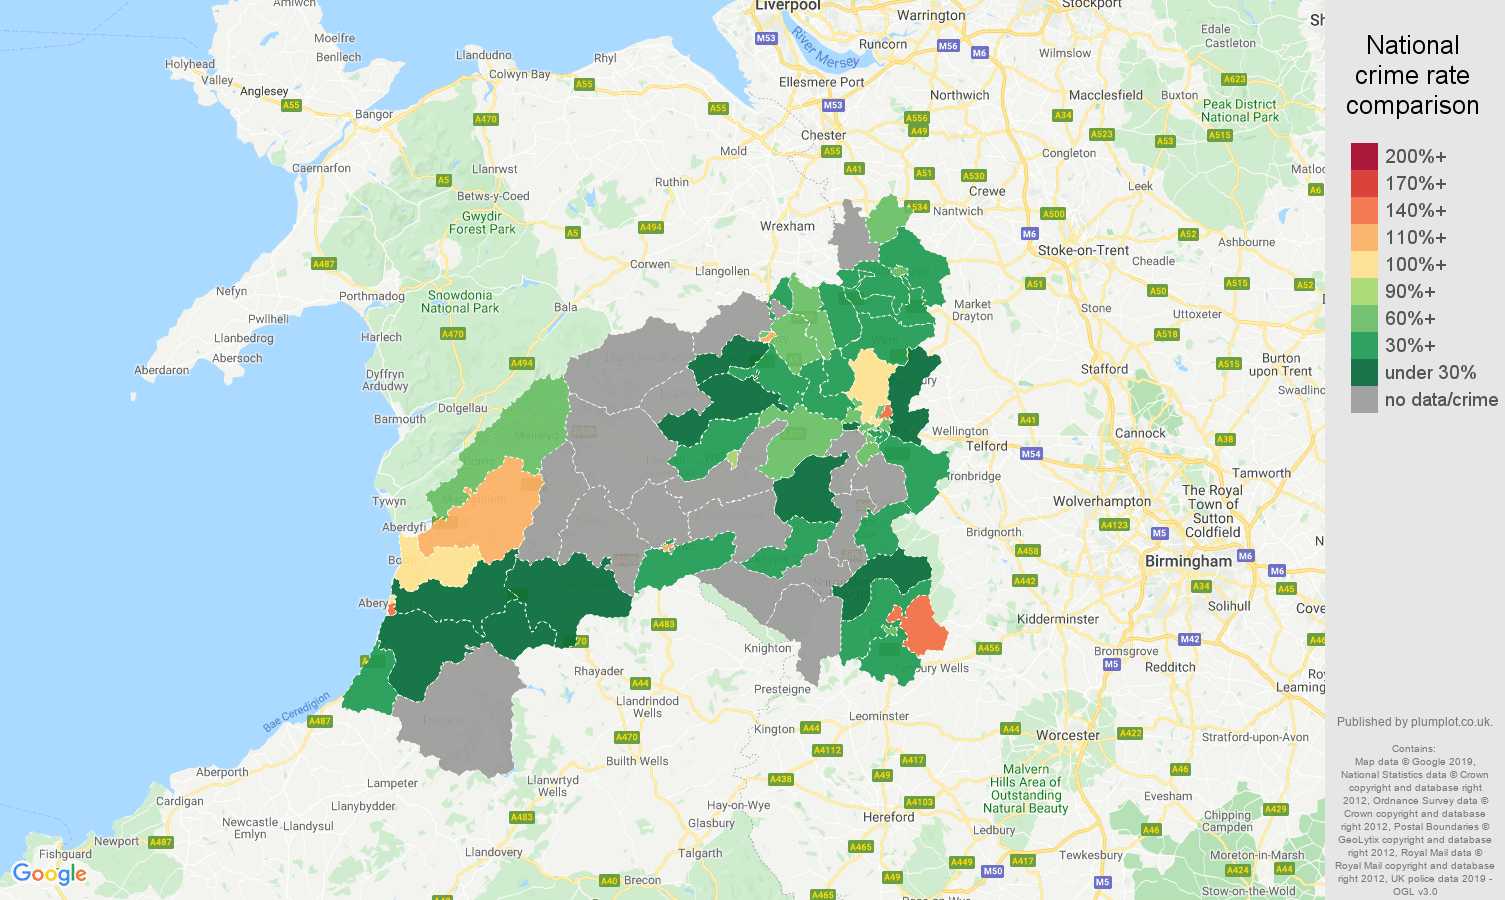 Shrewsbury possession of weapons crime rate comparison map